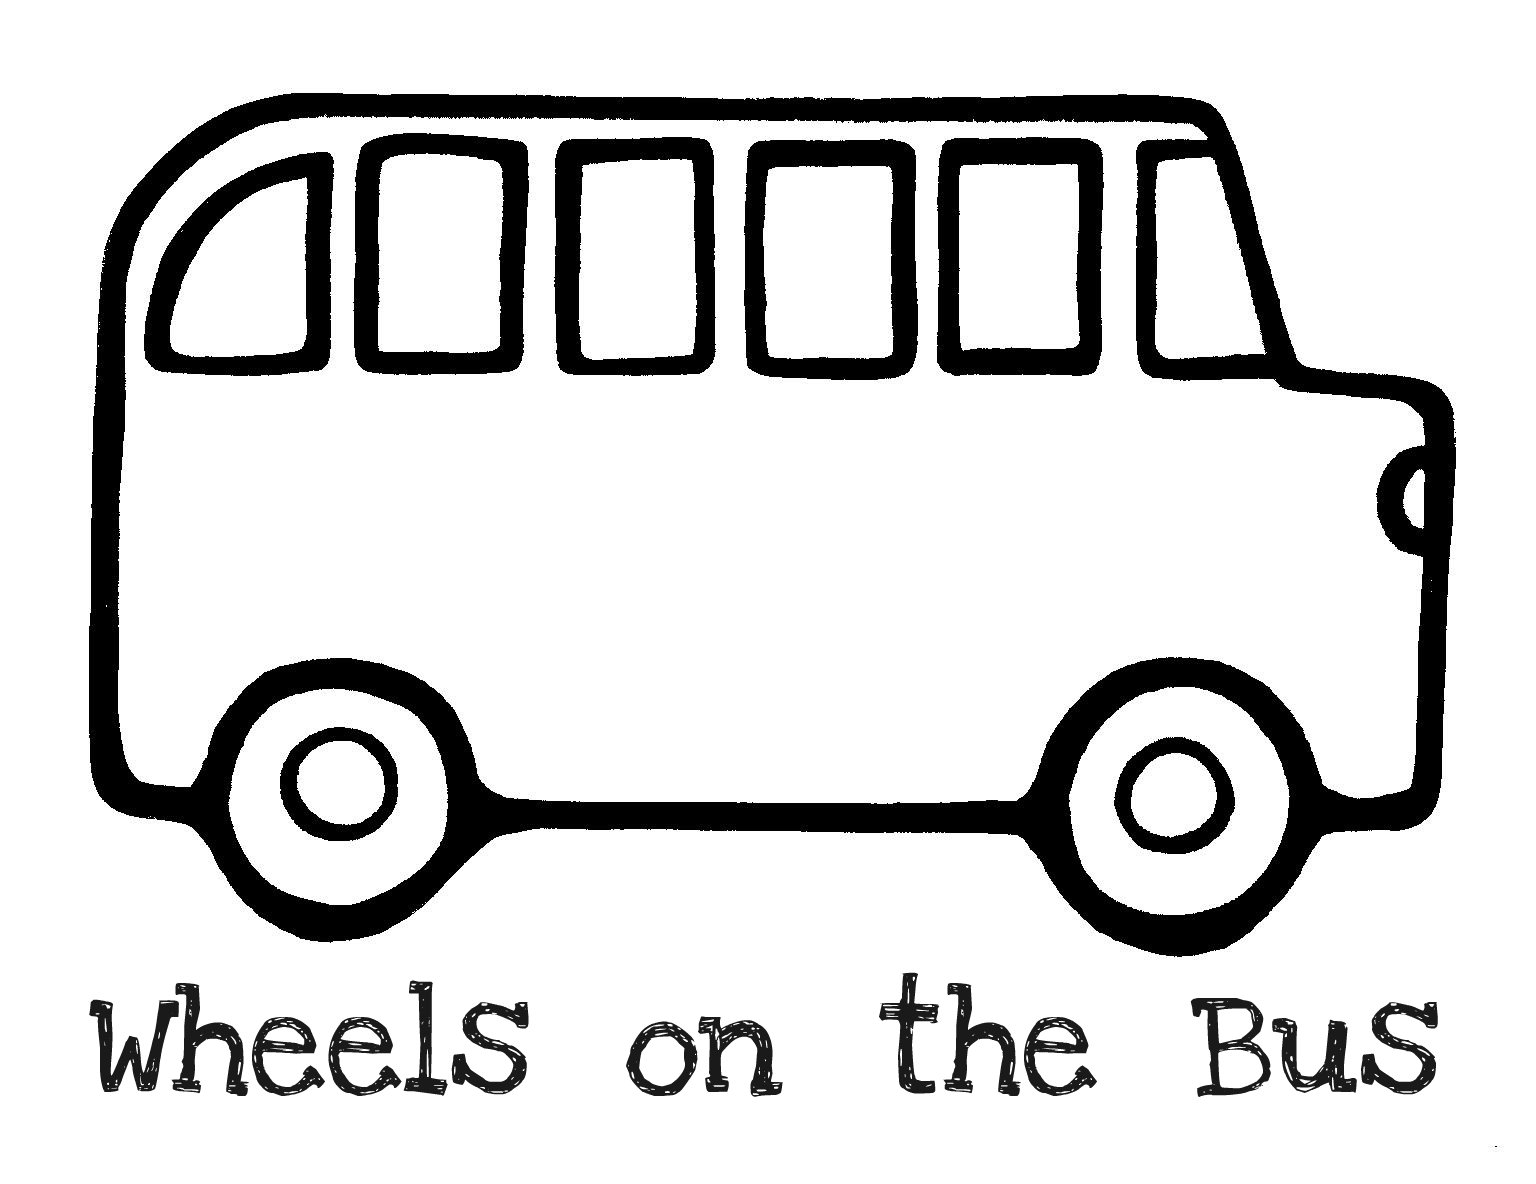 School Bus Coloring Pages For Preschool Image Gallery HCPR